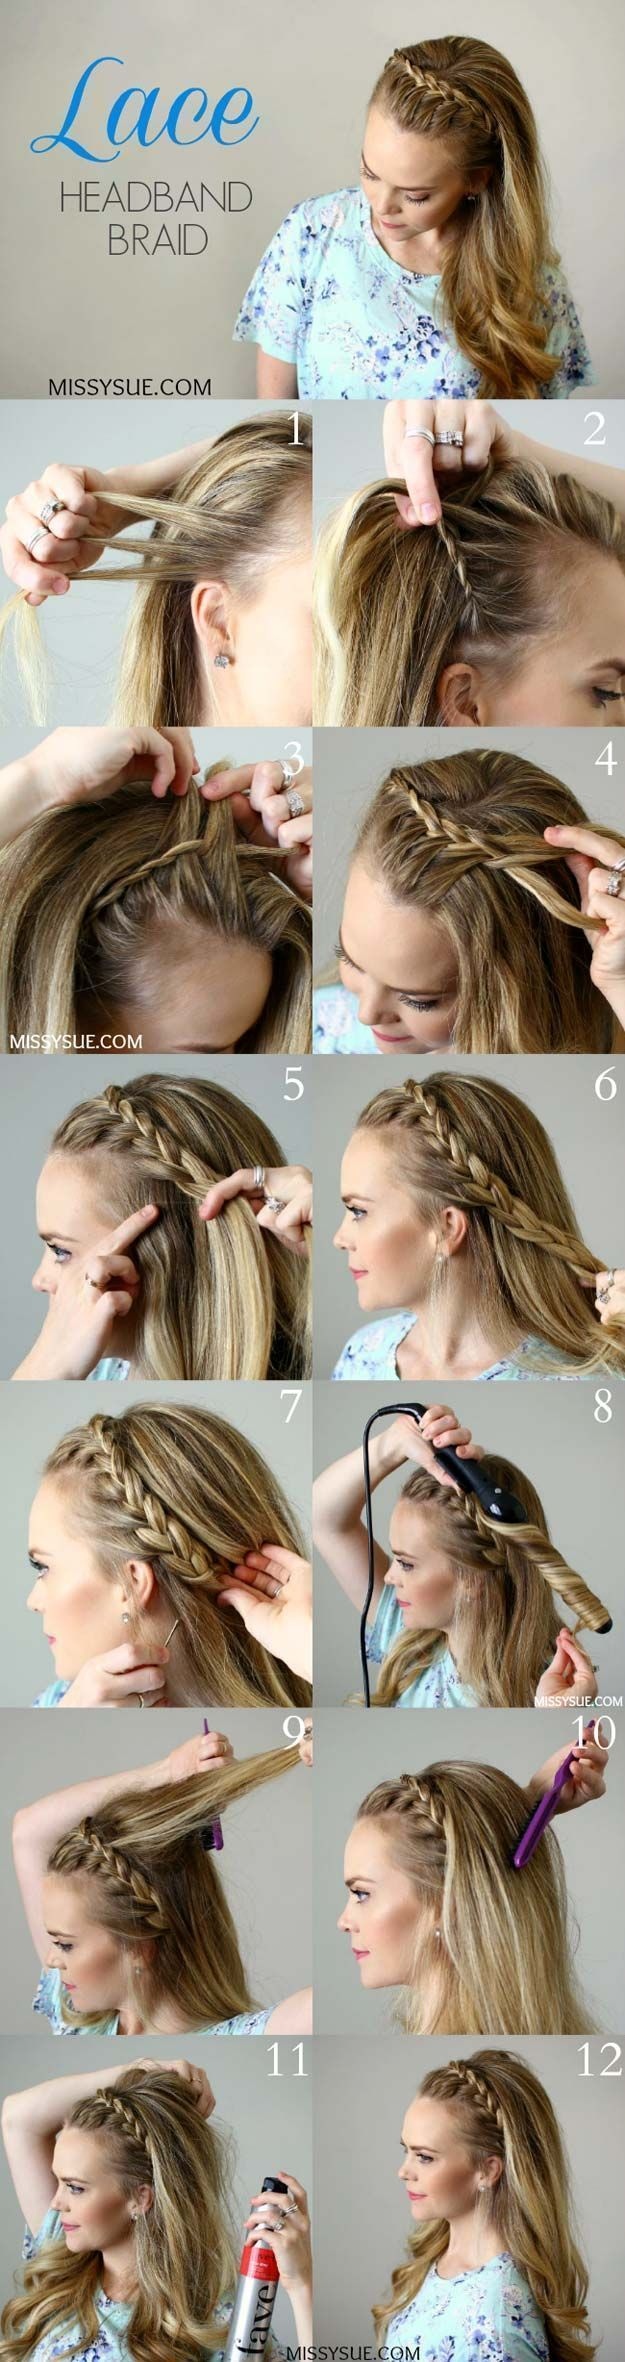 Best Hair Braiding Tutorials - Lace Headband Braid - Easy Step by Step Tutorials for Braids - How To Braid Fishtail, French Braids, Flower Crown, Side Braids, Cornrows, Updos - Cool Braided Hairstyles for Girls, Teens and Women - School, Day and Evening,